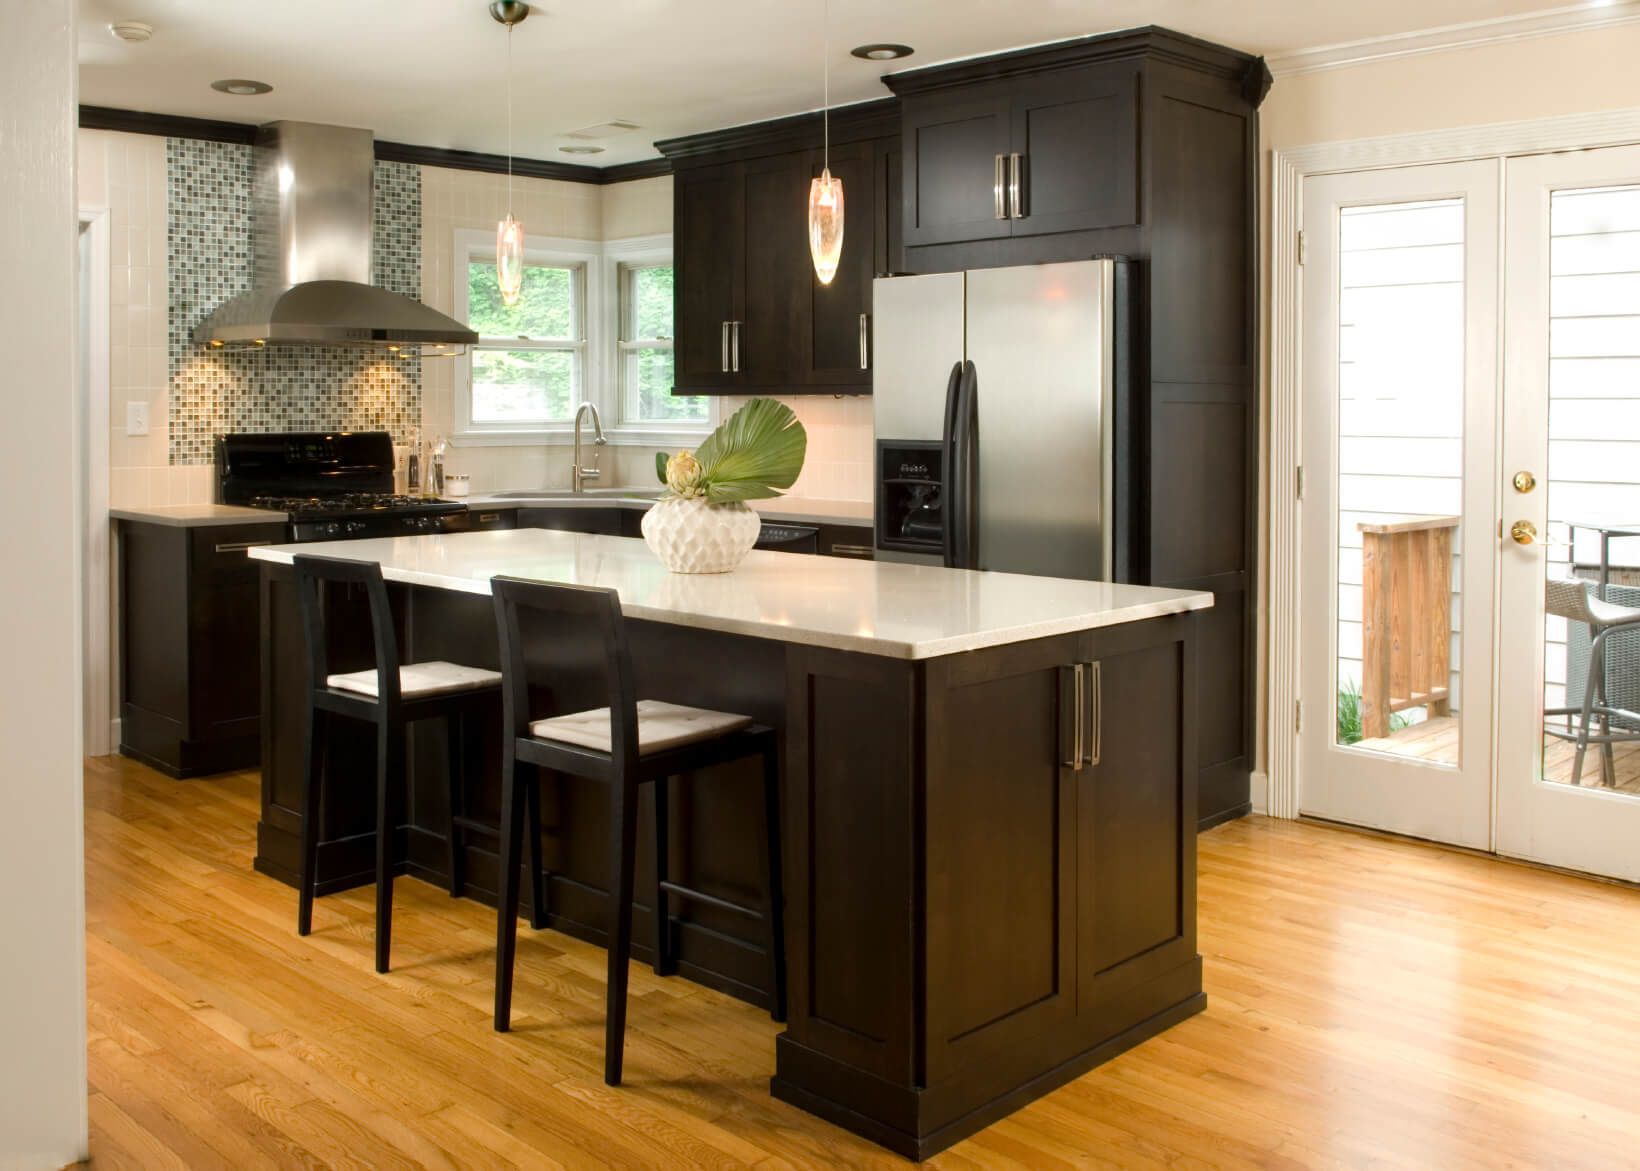 40 Magnificent Kitchen Designs With Dark Cabinets ... on Maple Kitchen Cabinets With Dark Wood Floors Dark Countertops  id=69177